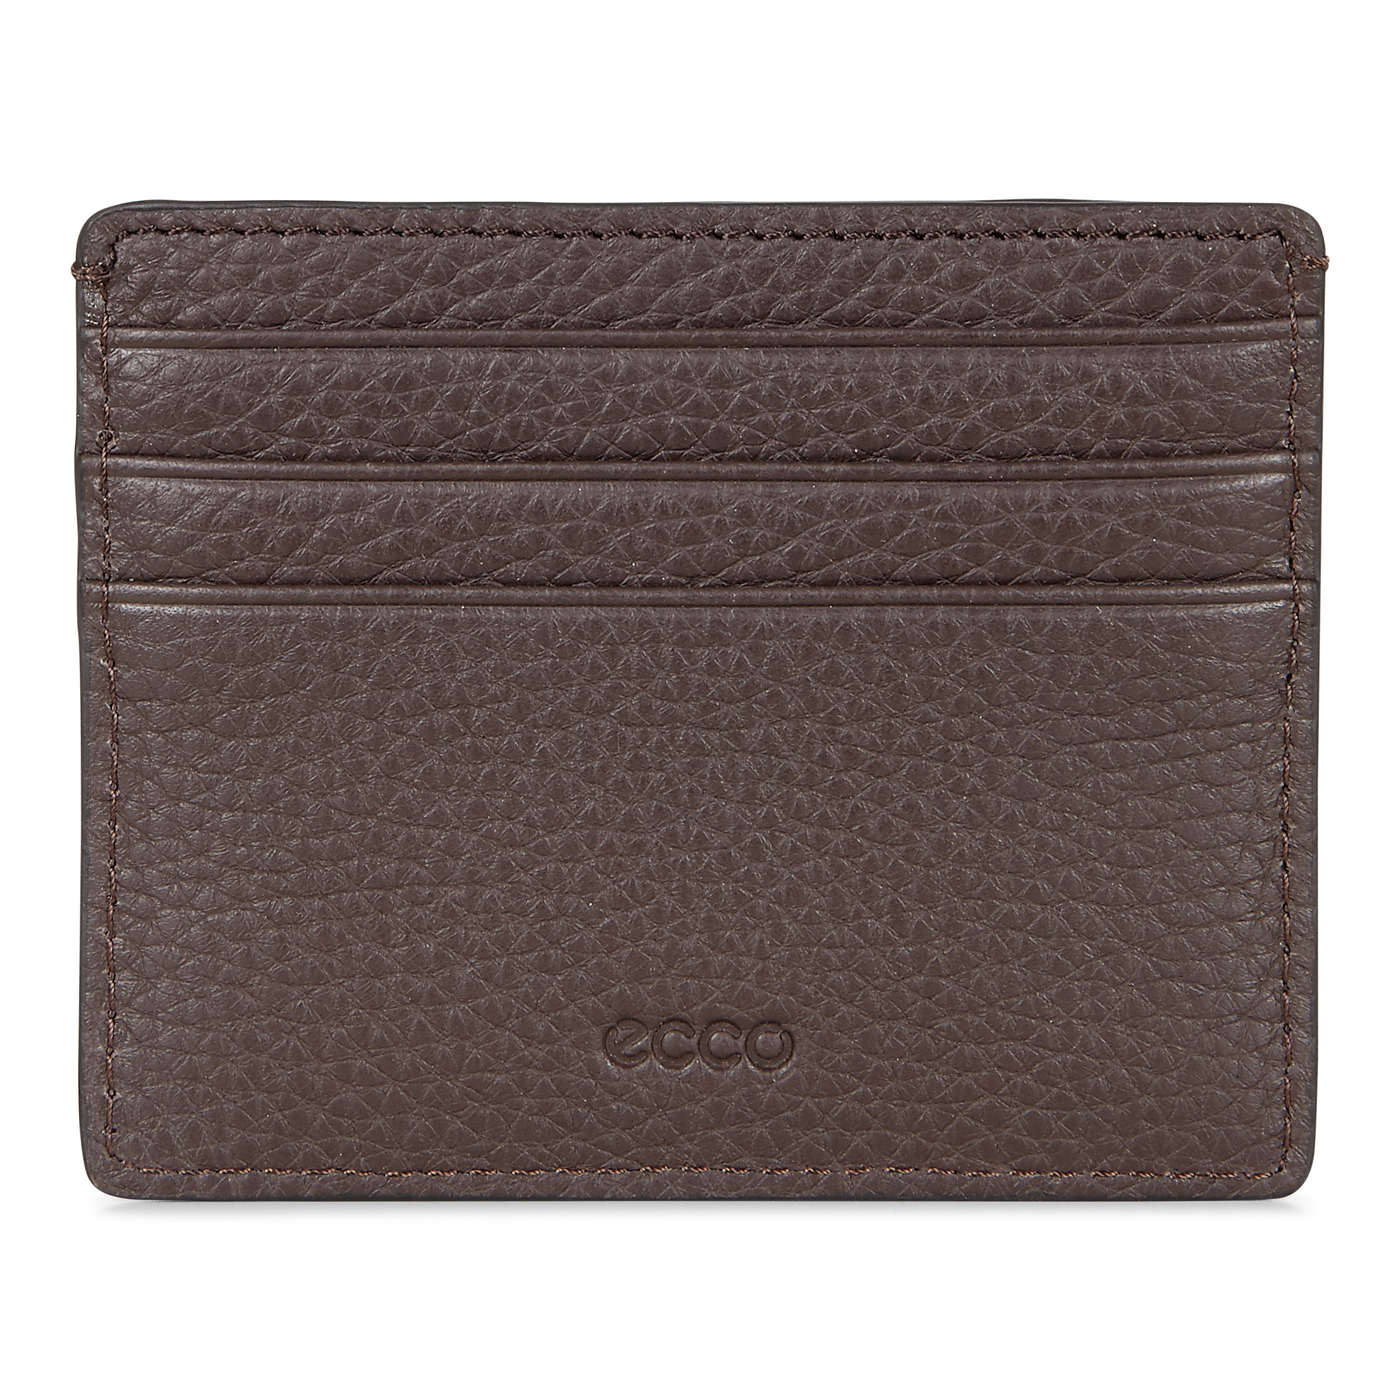 ECCO BJORN Slim Card Case